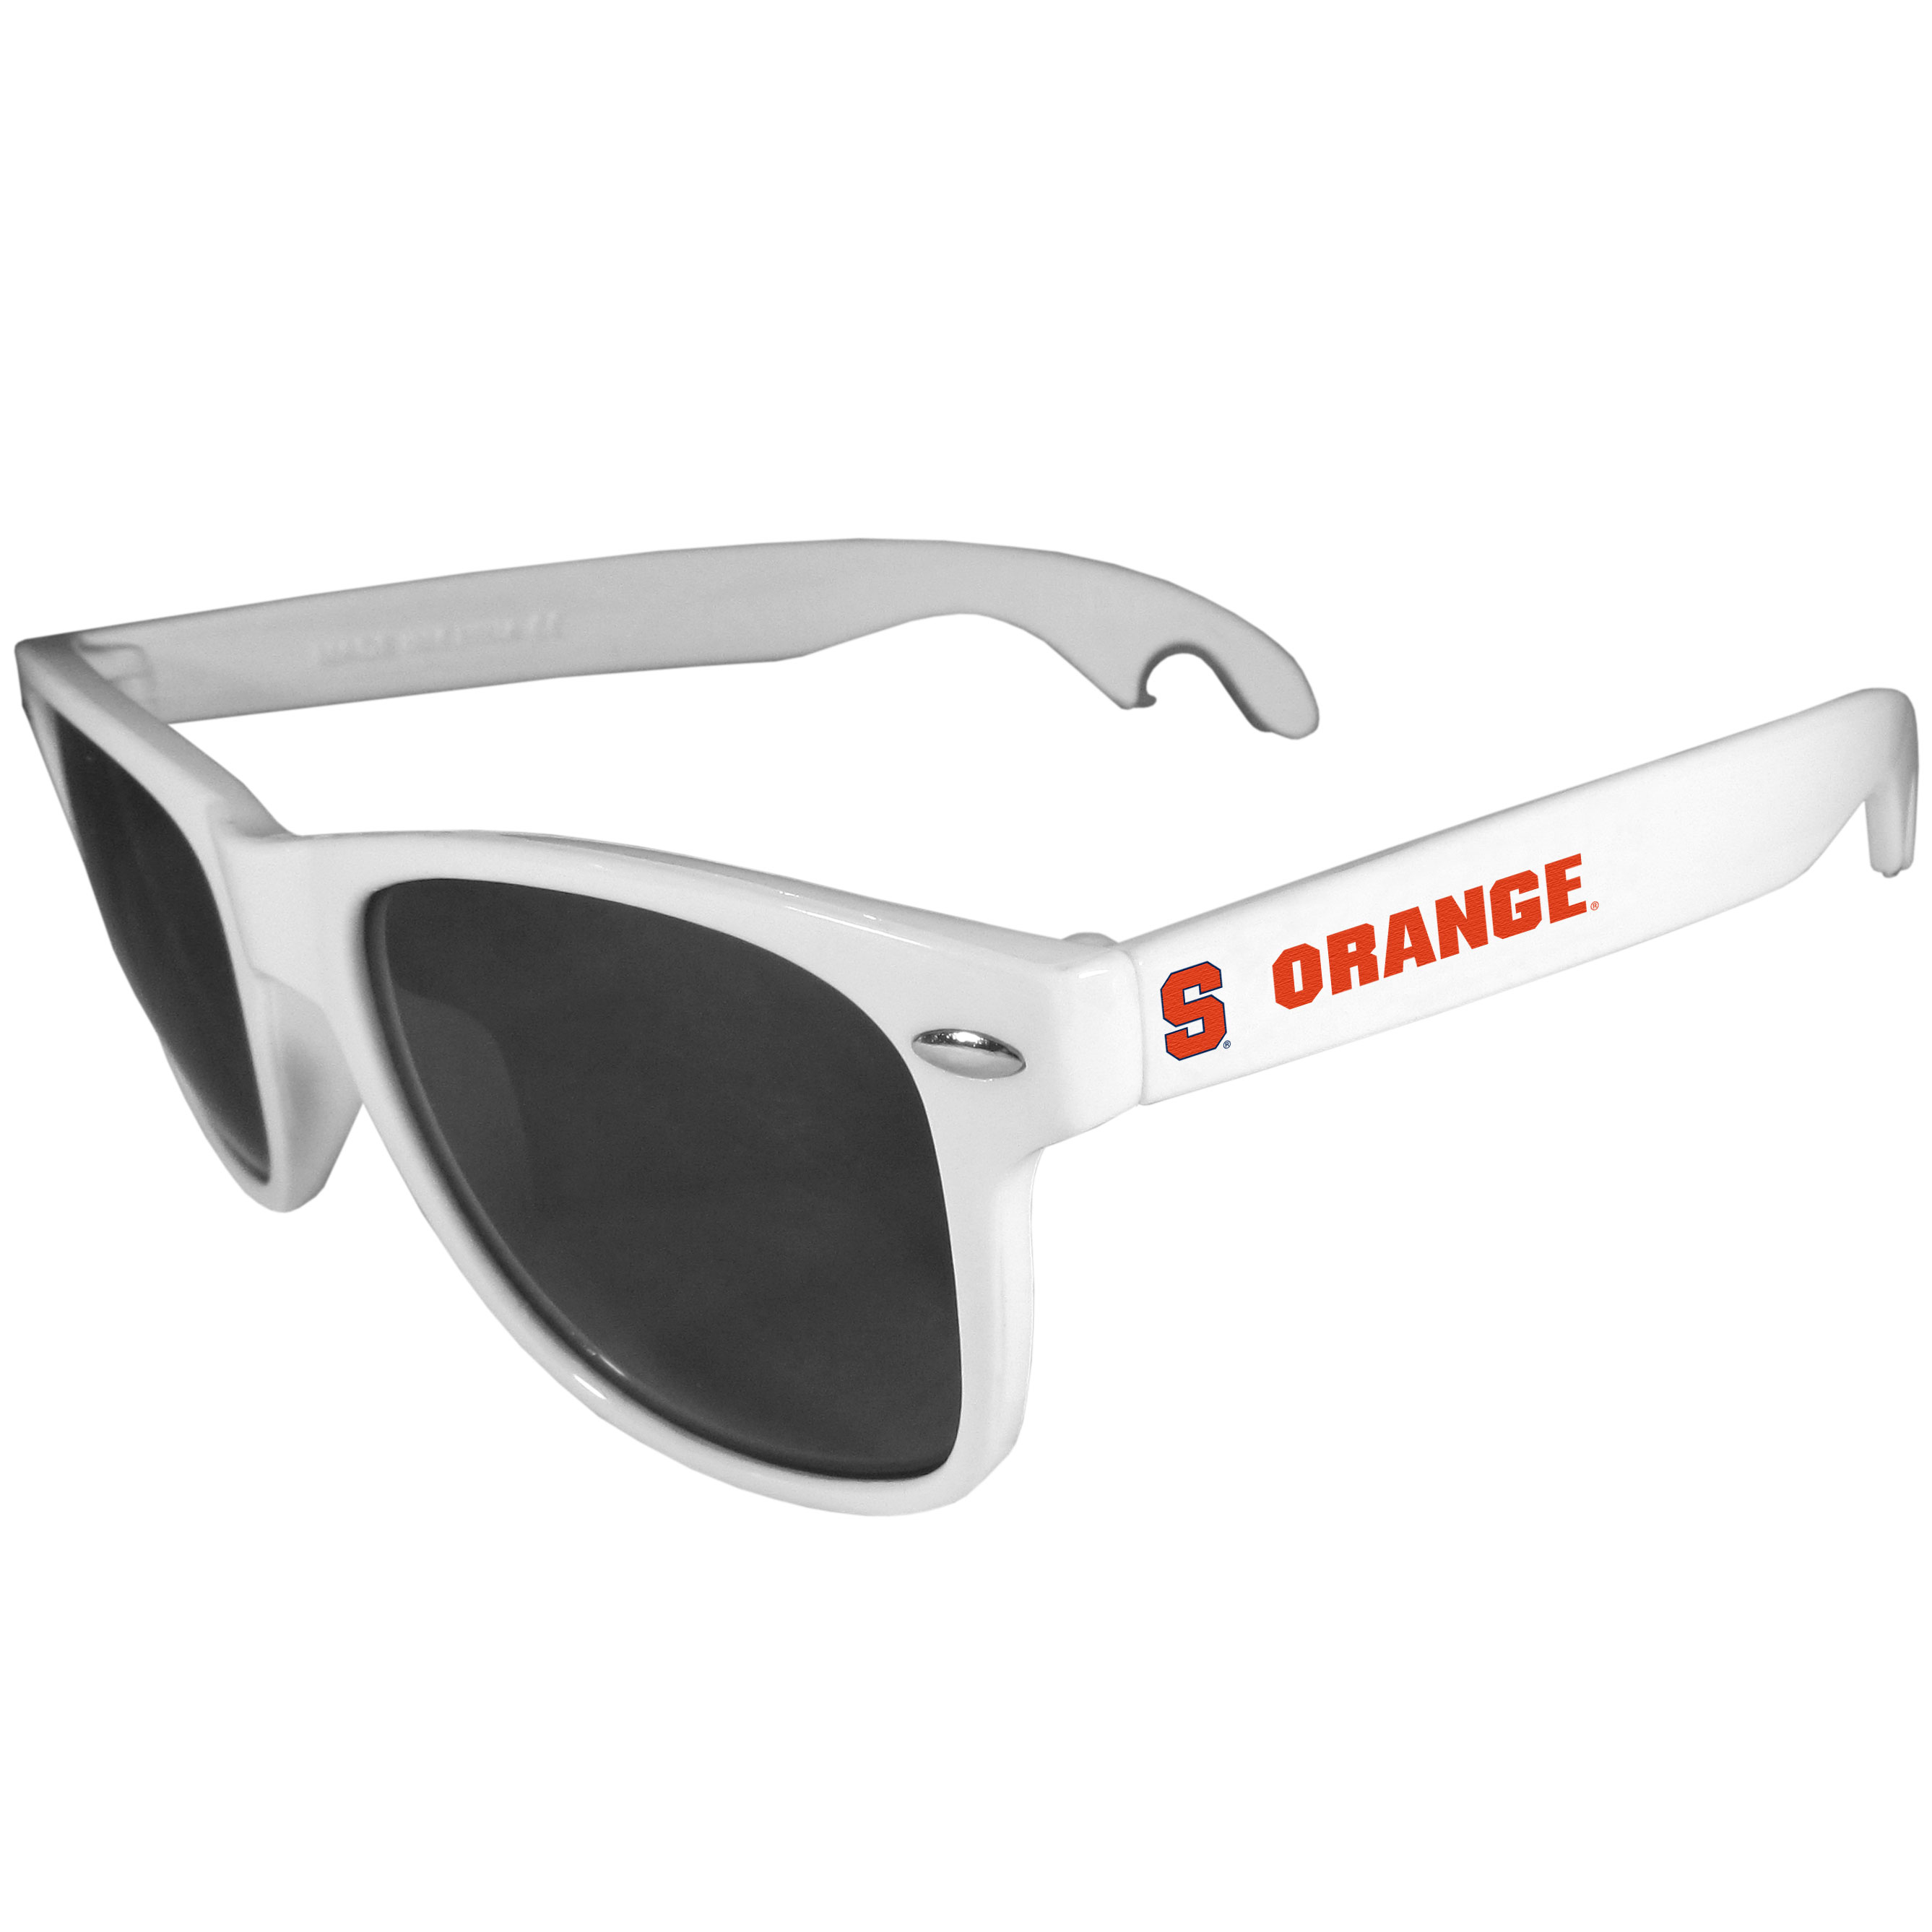 Syracuse Orange Beachfarer Bottle Opener Sunglasses, White - Seriously, these sunglasses open bottles! Keep the party going with these amazing Syracuse Orange bottle opener sunglasses. The stylish retro frames feature team designs on the arms and functional bottle openers on the end of the arms. Whether you are at the beach or having a backyard BBQ on game day, these shades will keep your eyes protected with 100% UVA/UVB protection and keep you hydrated with the handy bottle opener arms.